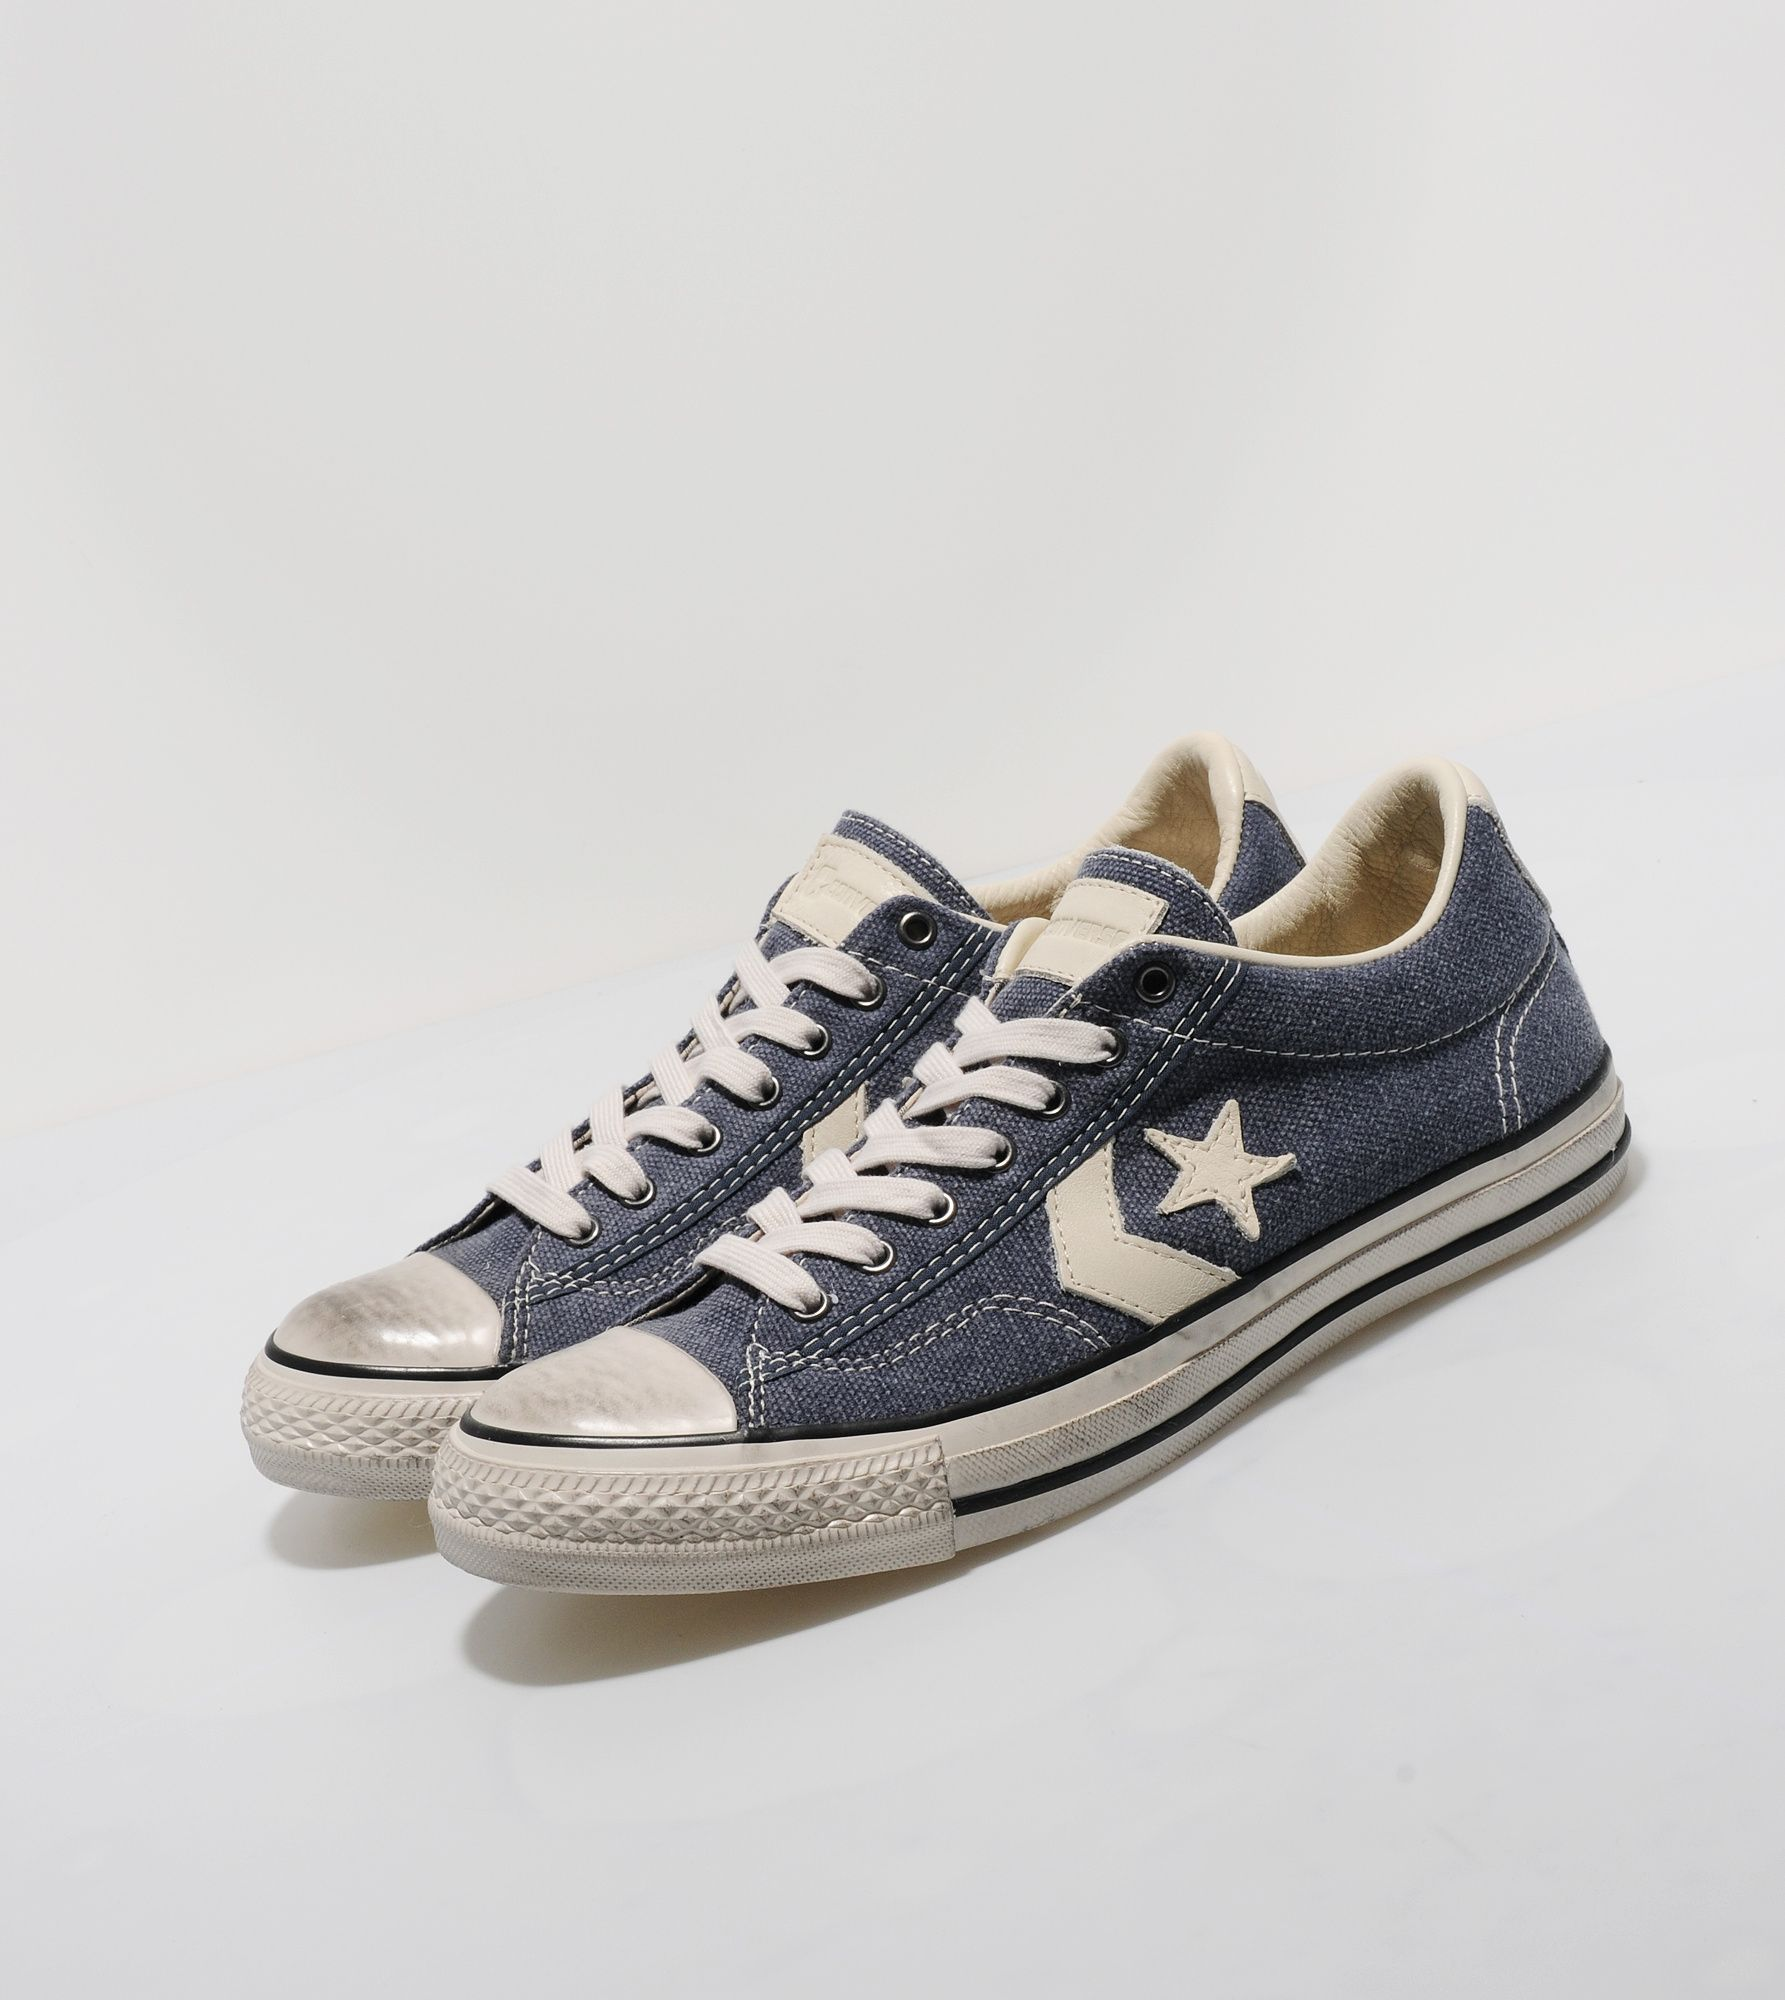 305455cd42ea83 Find great deals on eBay for converse john varvatos and converse jack  purcell.